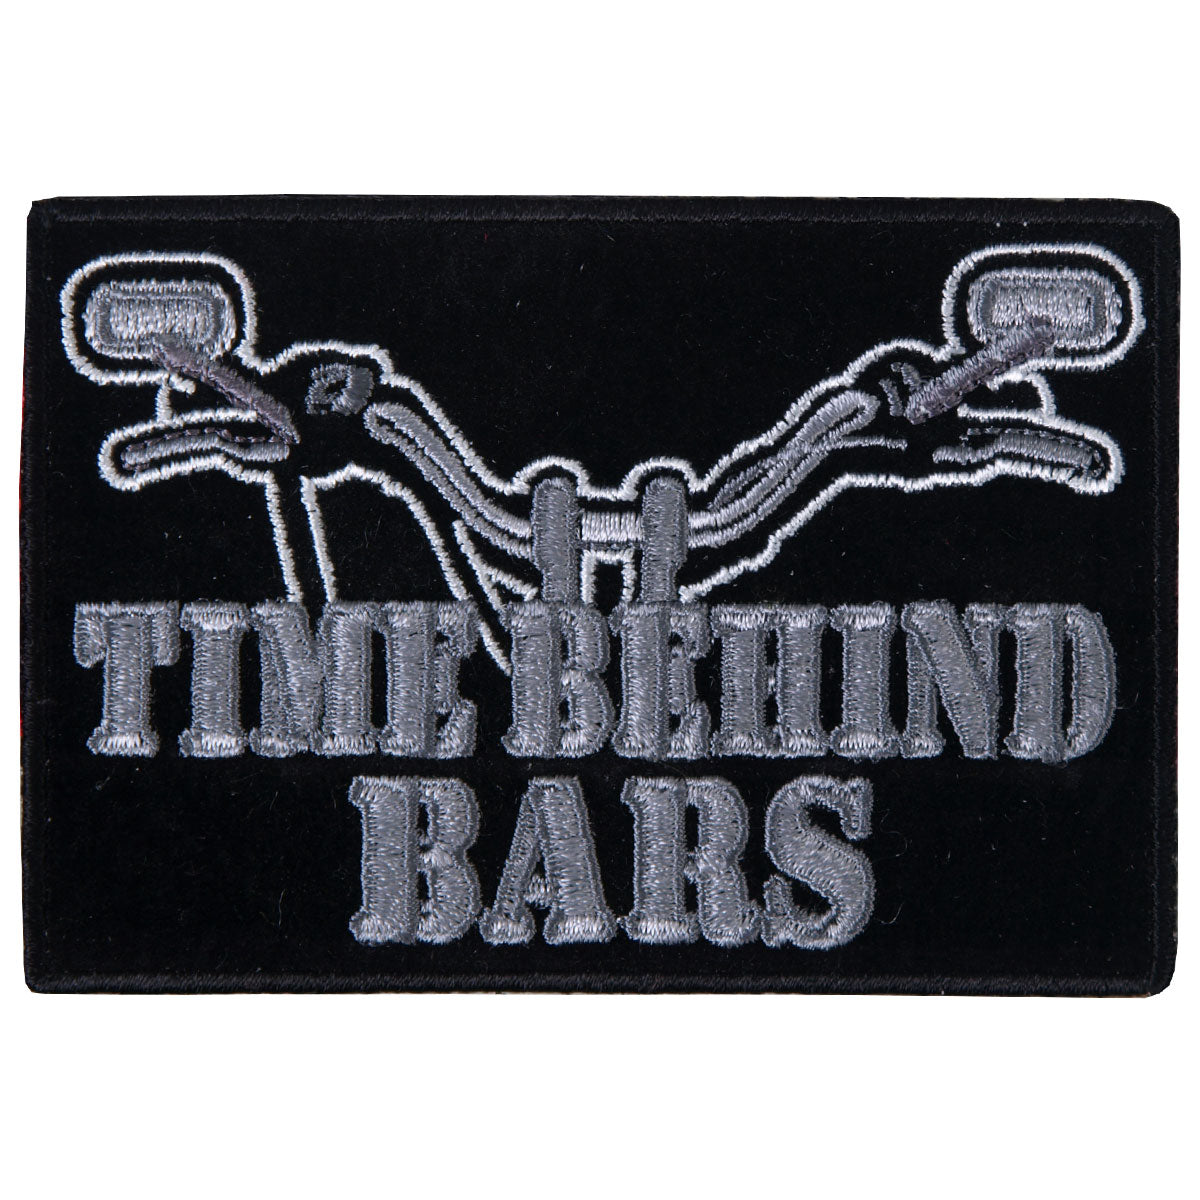 "Hot Leathers Time Behind Bars 4"" x 3"" Patch"